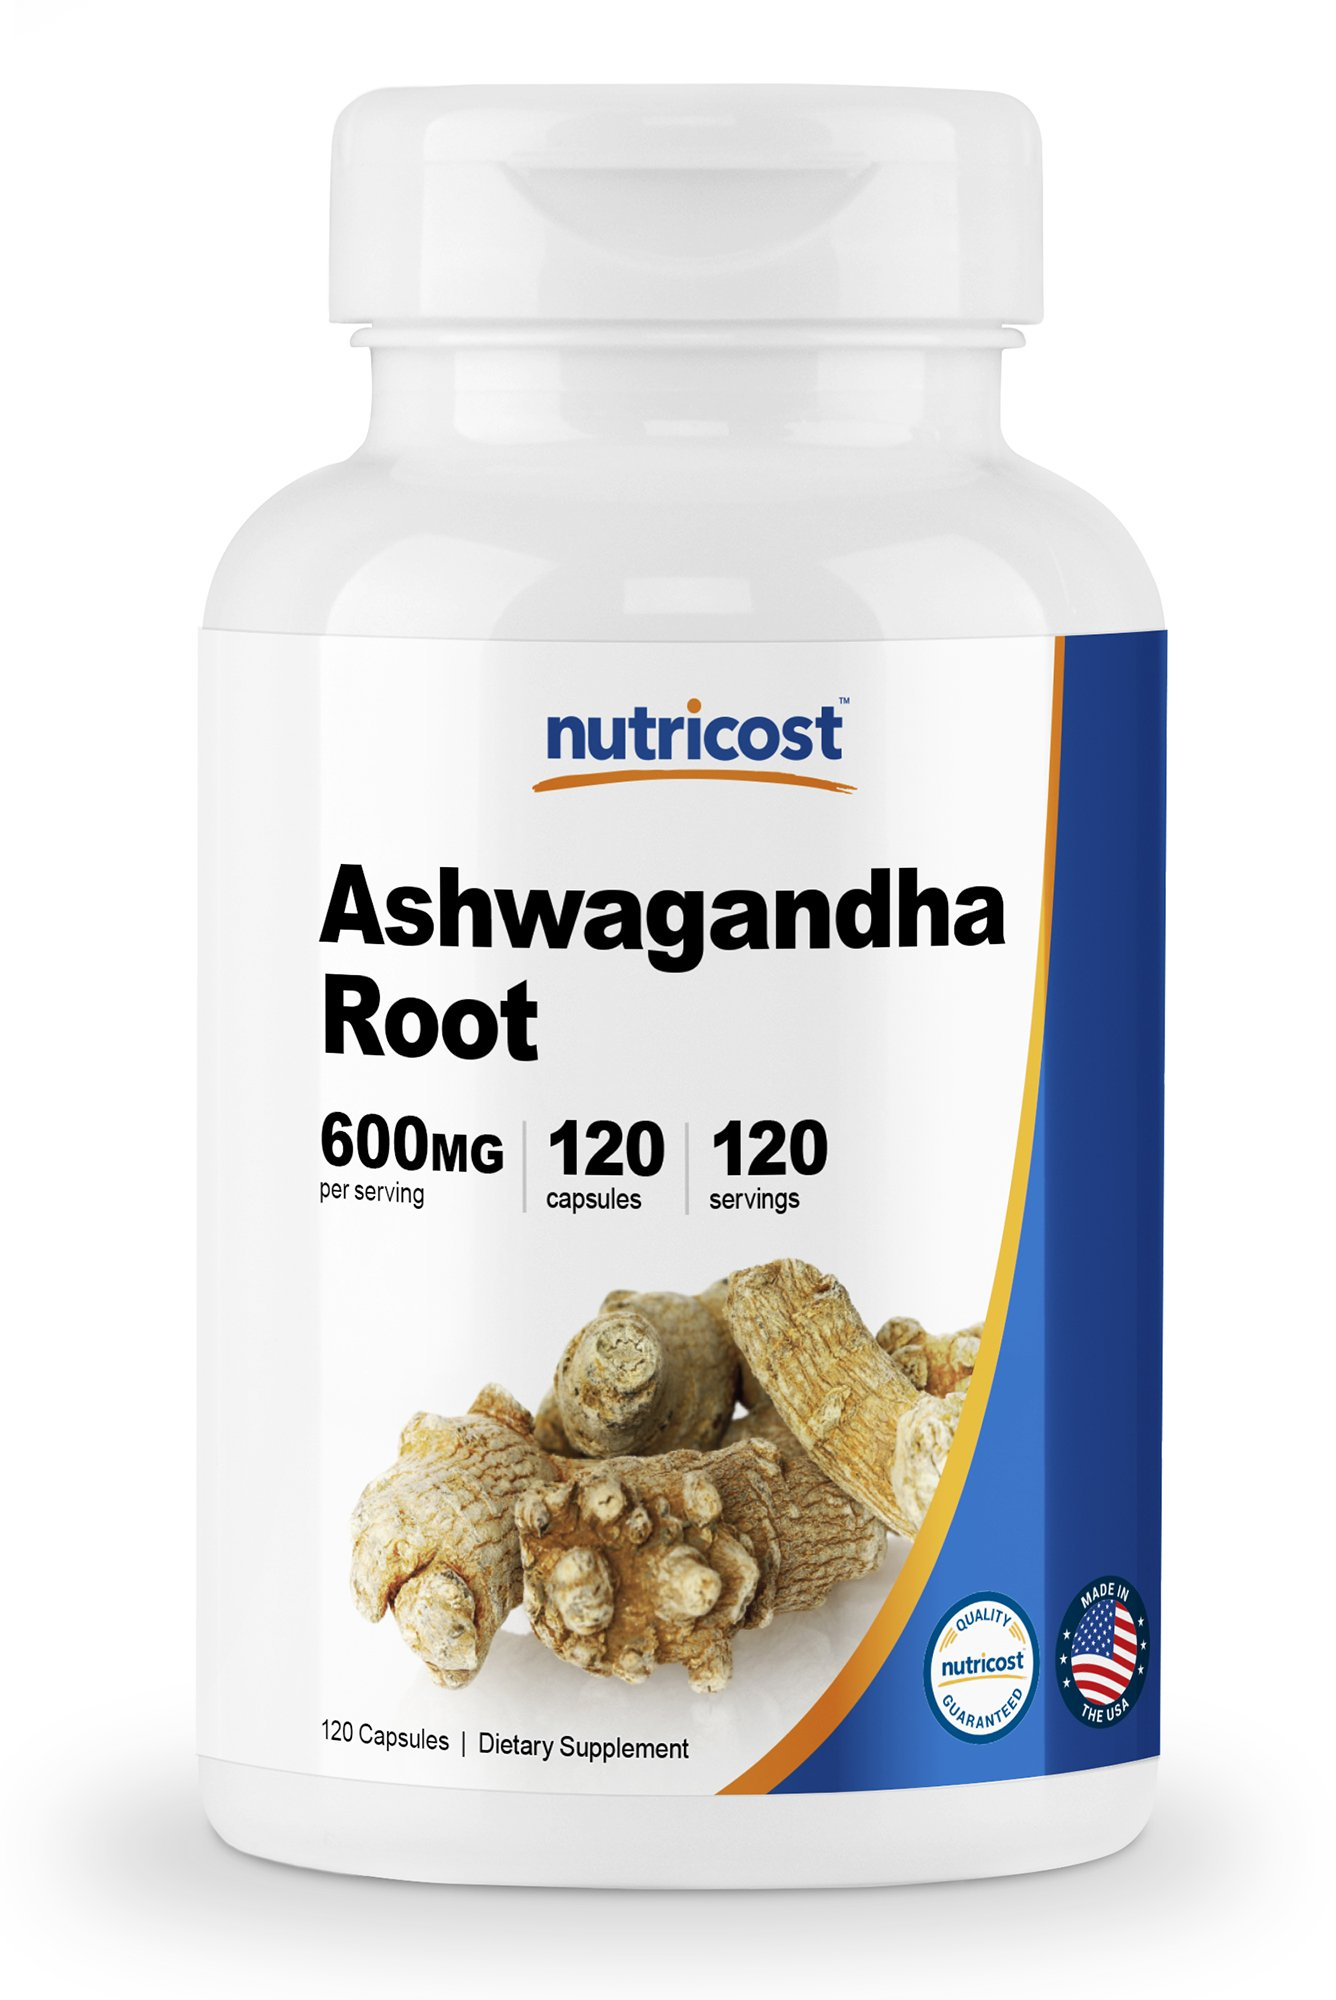 Nutricost Ashwagandha Herbal Supplement 600mg, 120 Capsules - Healthy Stress Response - Ashwagandha Root by Nutricost